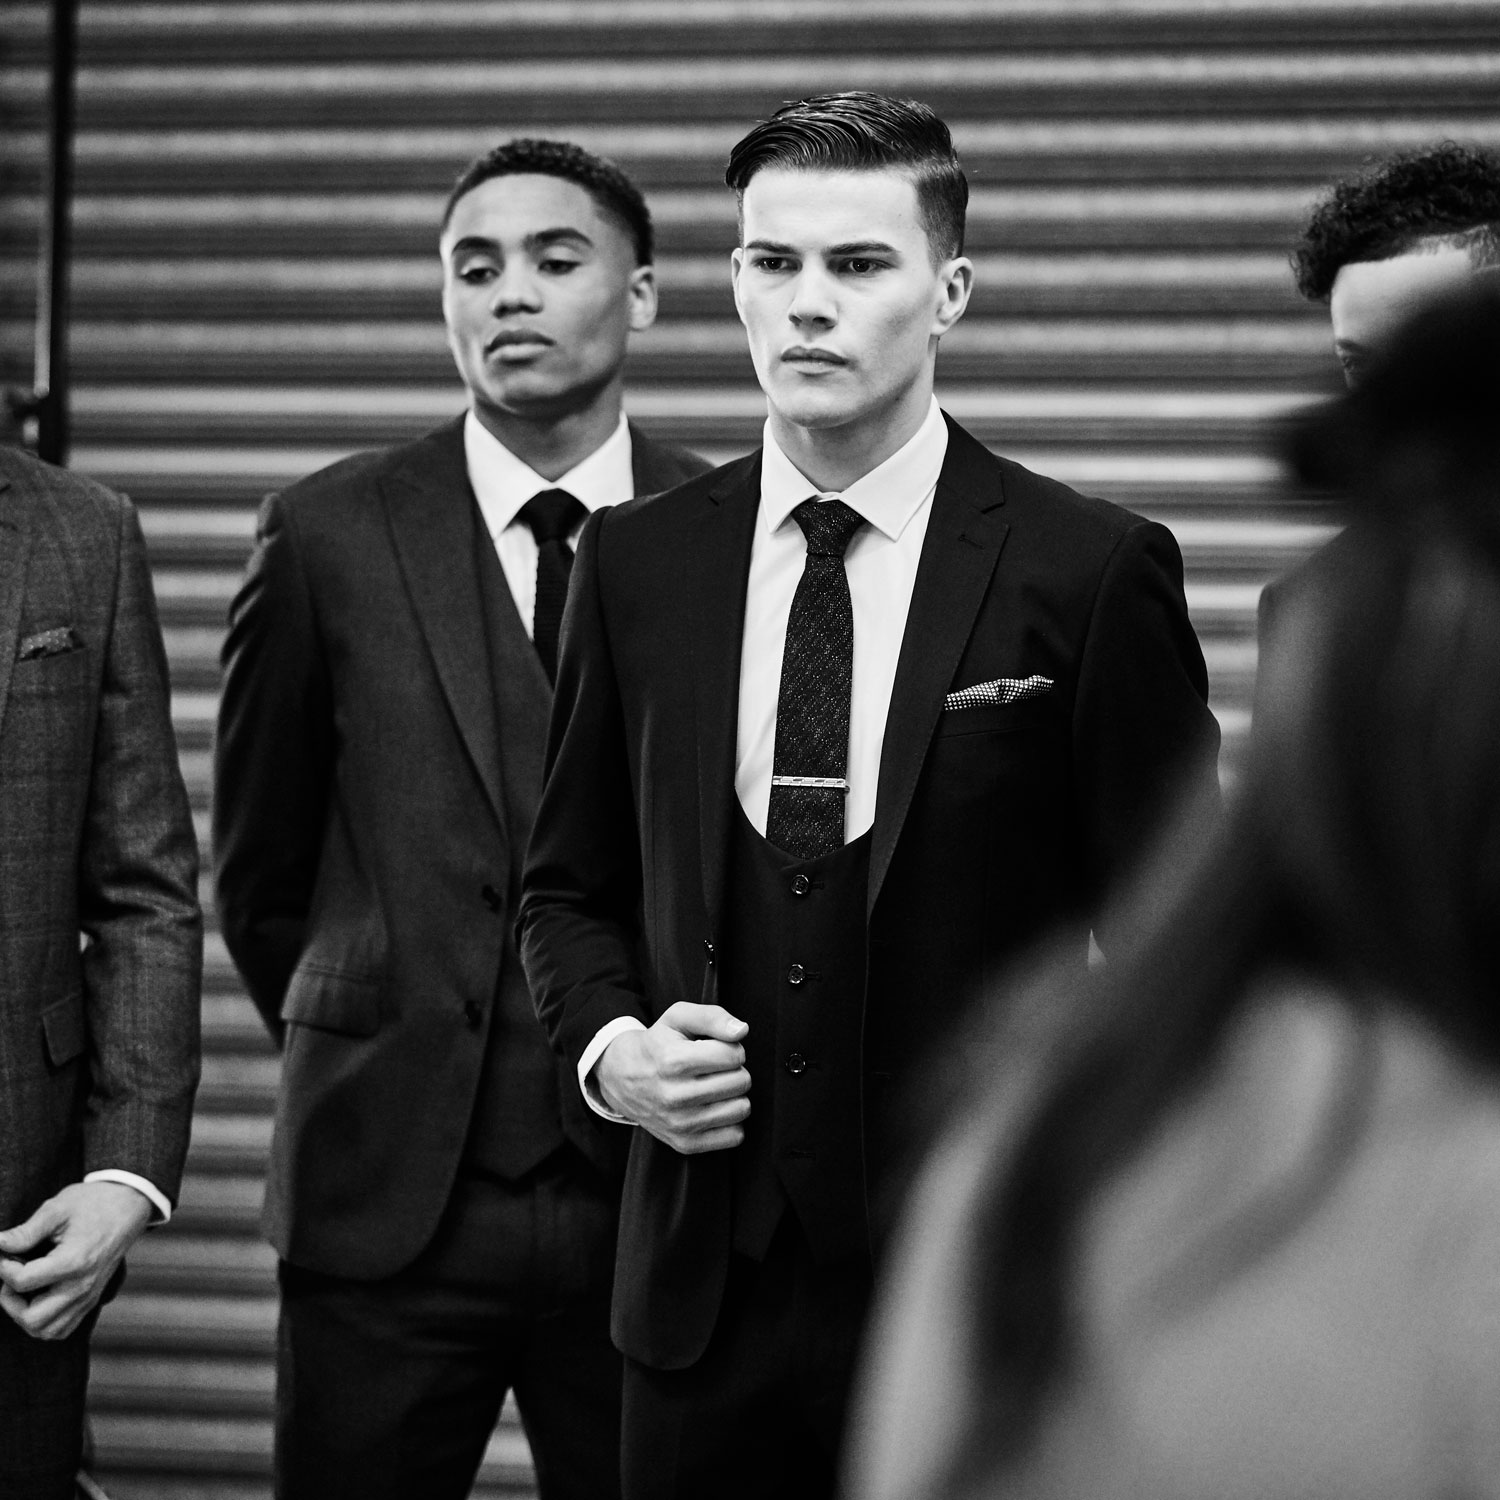 models in suits at a photography studio